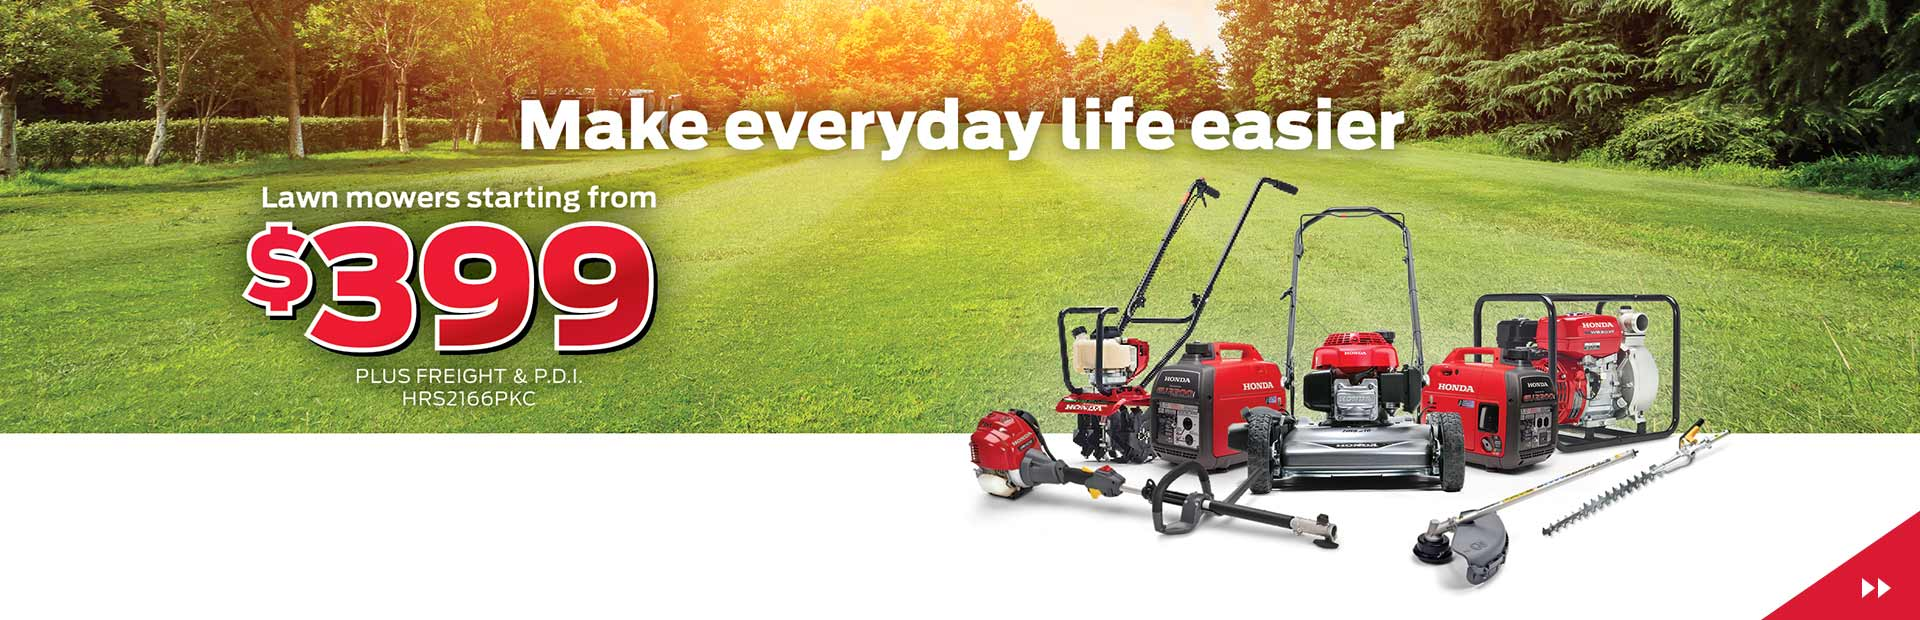 Make everyday life easier! Lawn mowers starting from $399 + frt/pdi